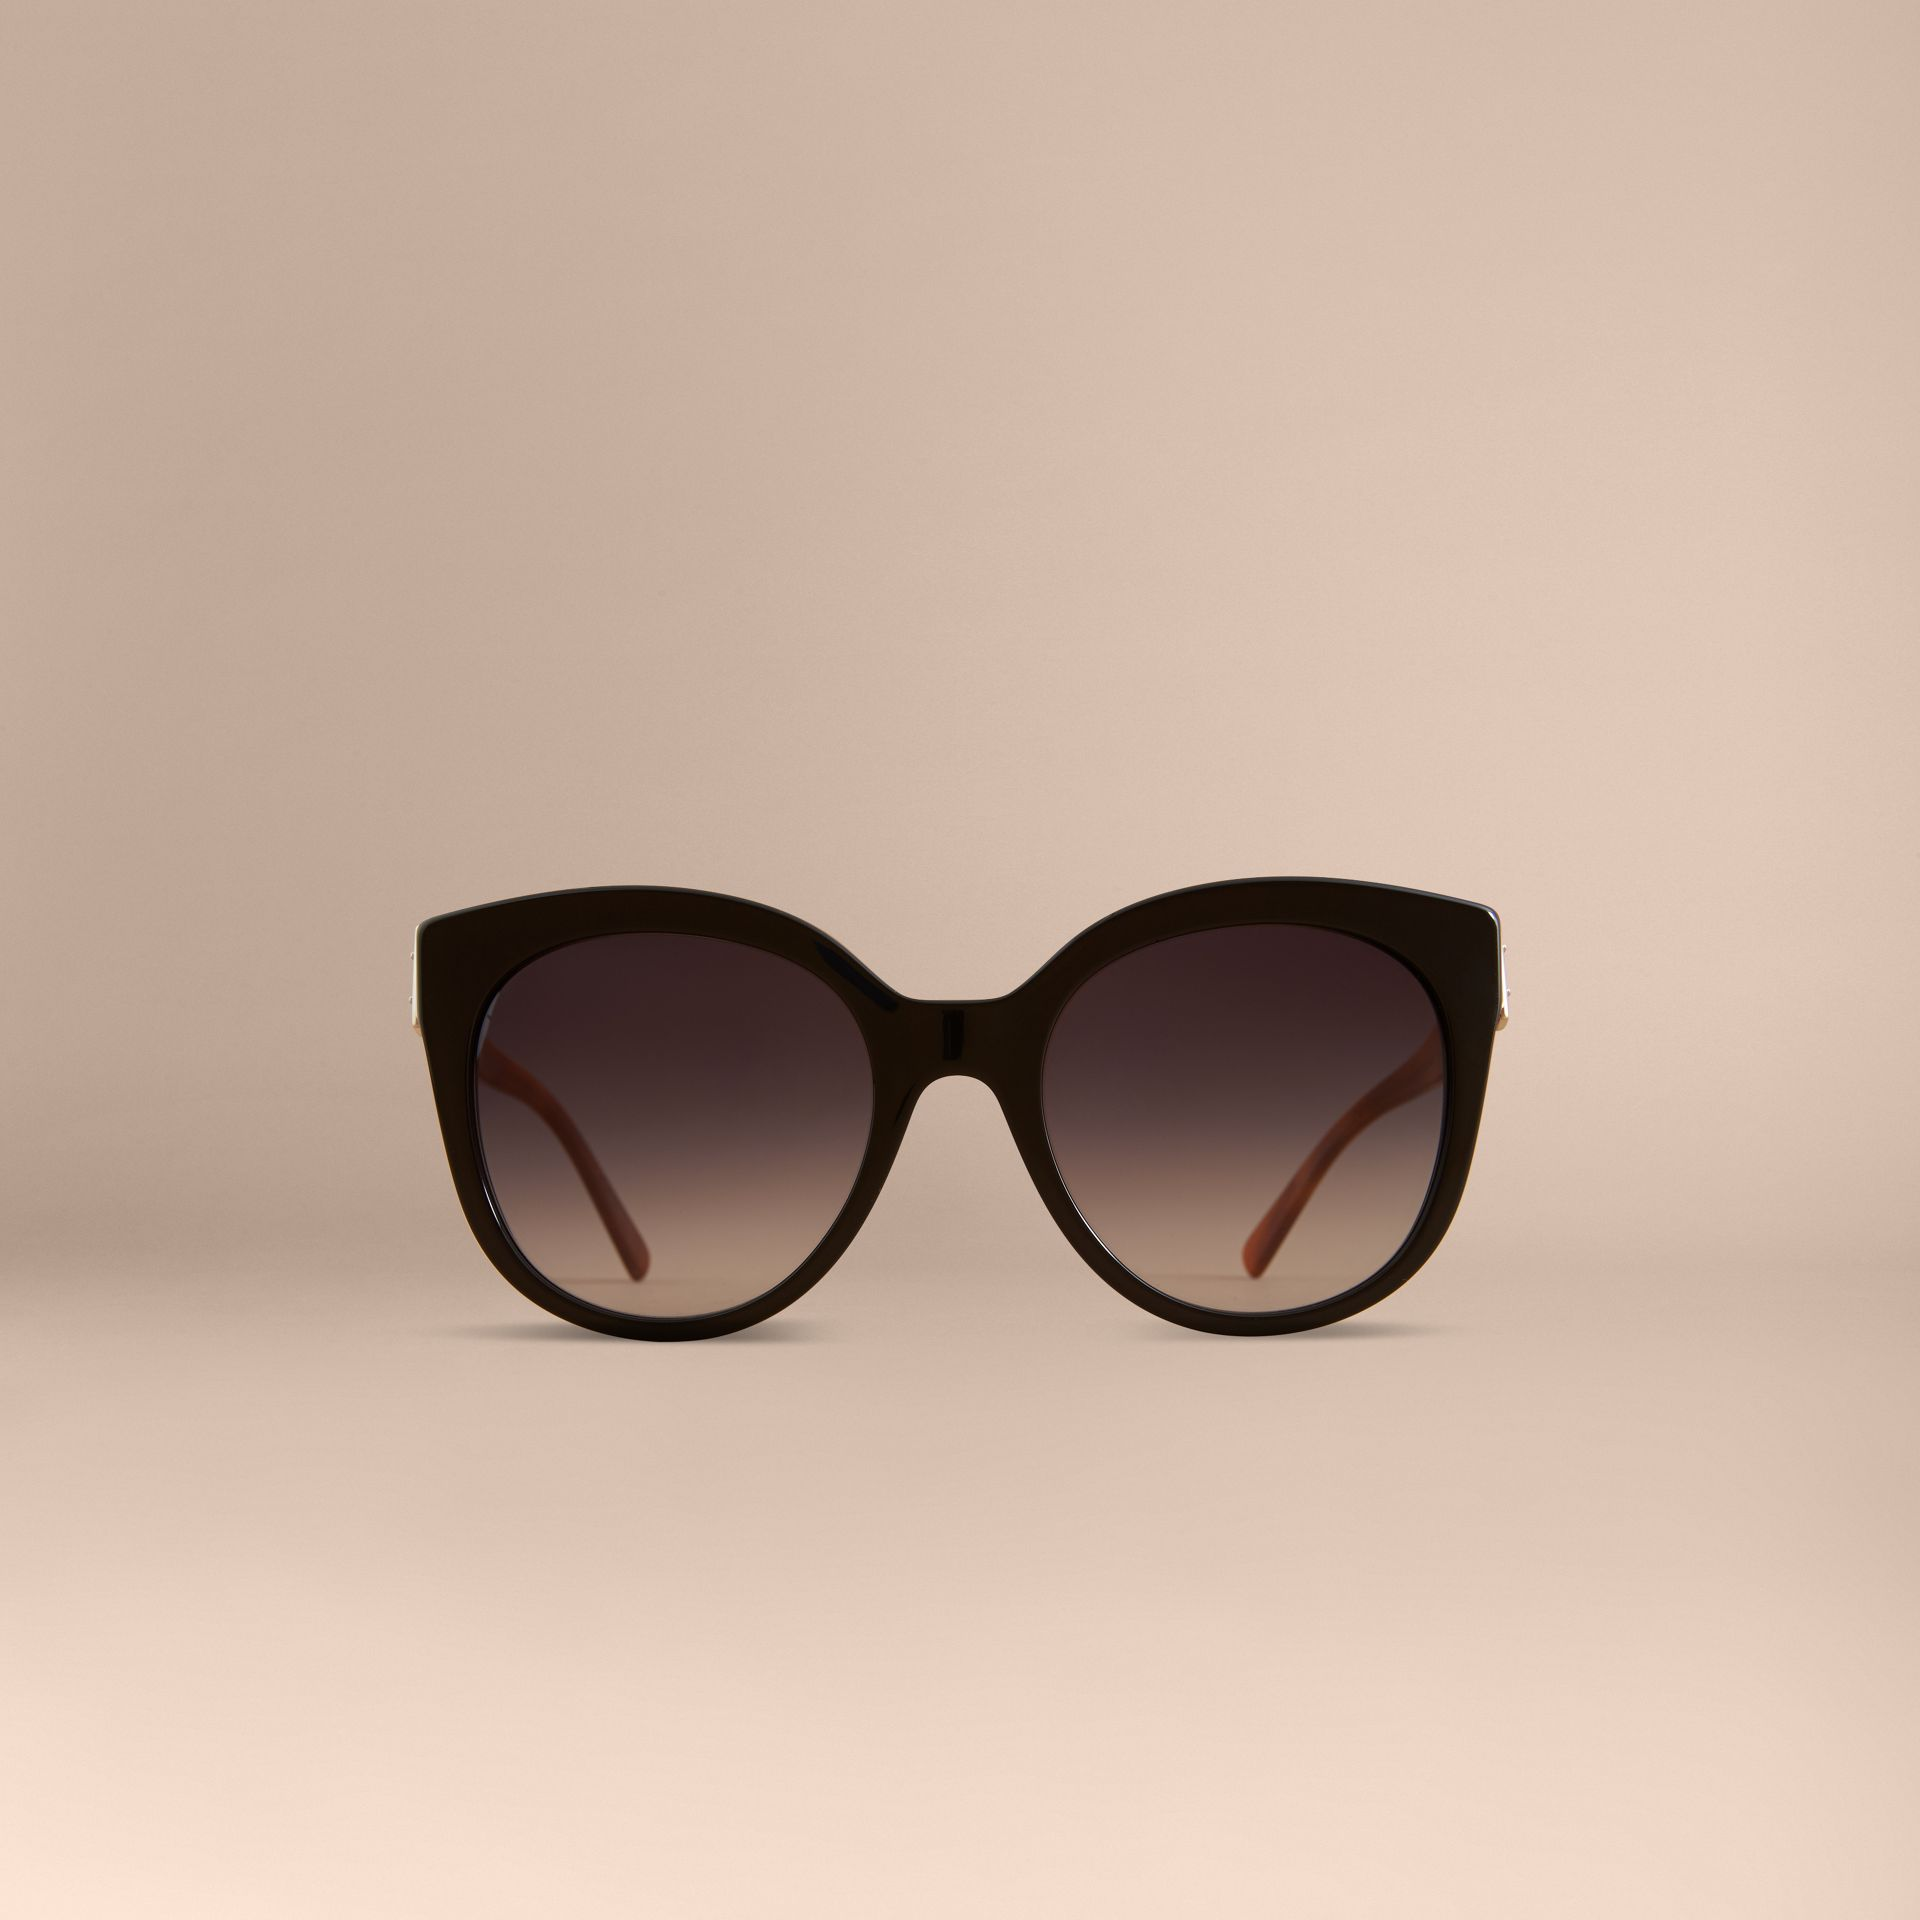 Buckle Detail Cat-eye Frame Sunglasses in Black - Women | Burberry Canada - gallery image 3